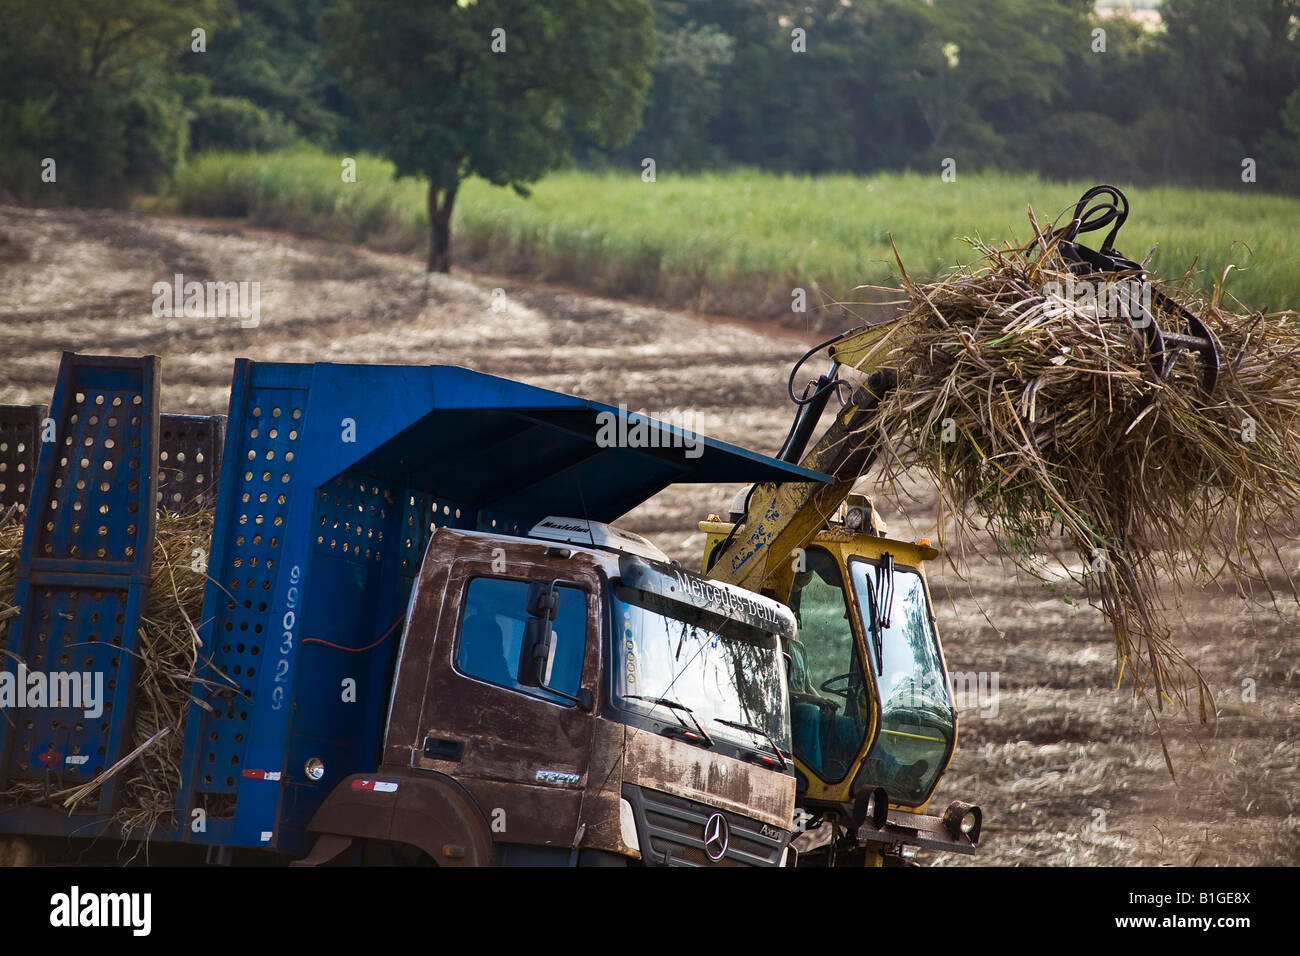 Machinery gathers sugarcane and loads truck for transporting to the mill for ethanol and sugar production Brazil - Stock Image